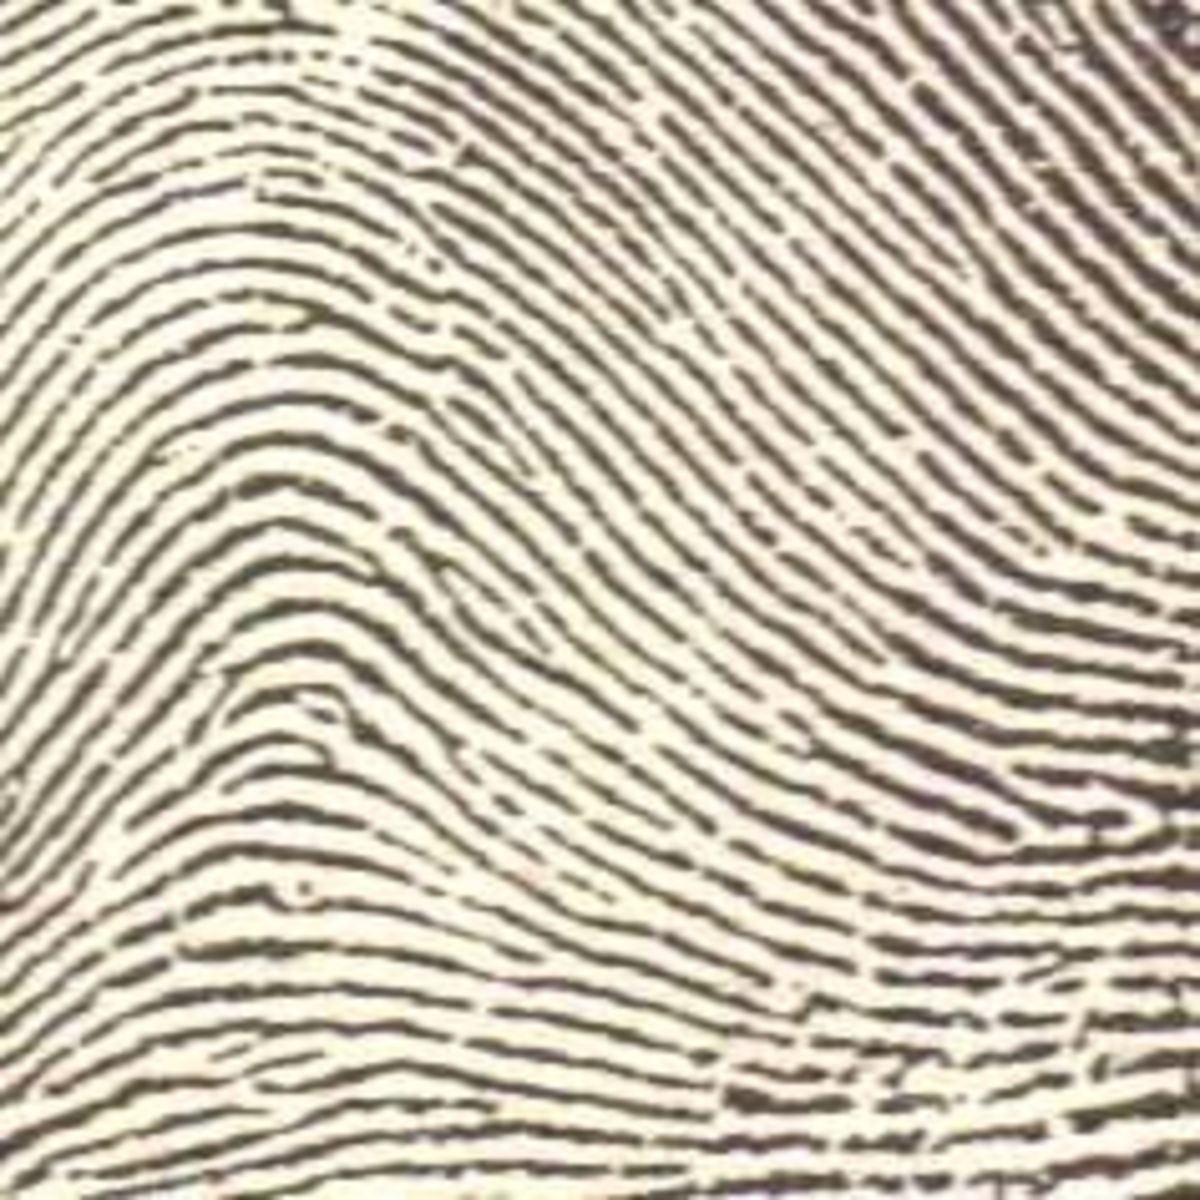 Dactyloscopy: The Forensic Science of Fingerprint Identification